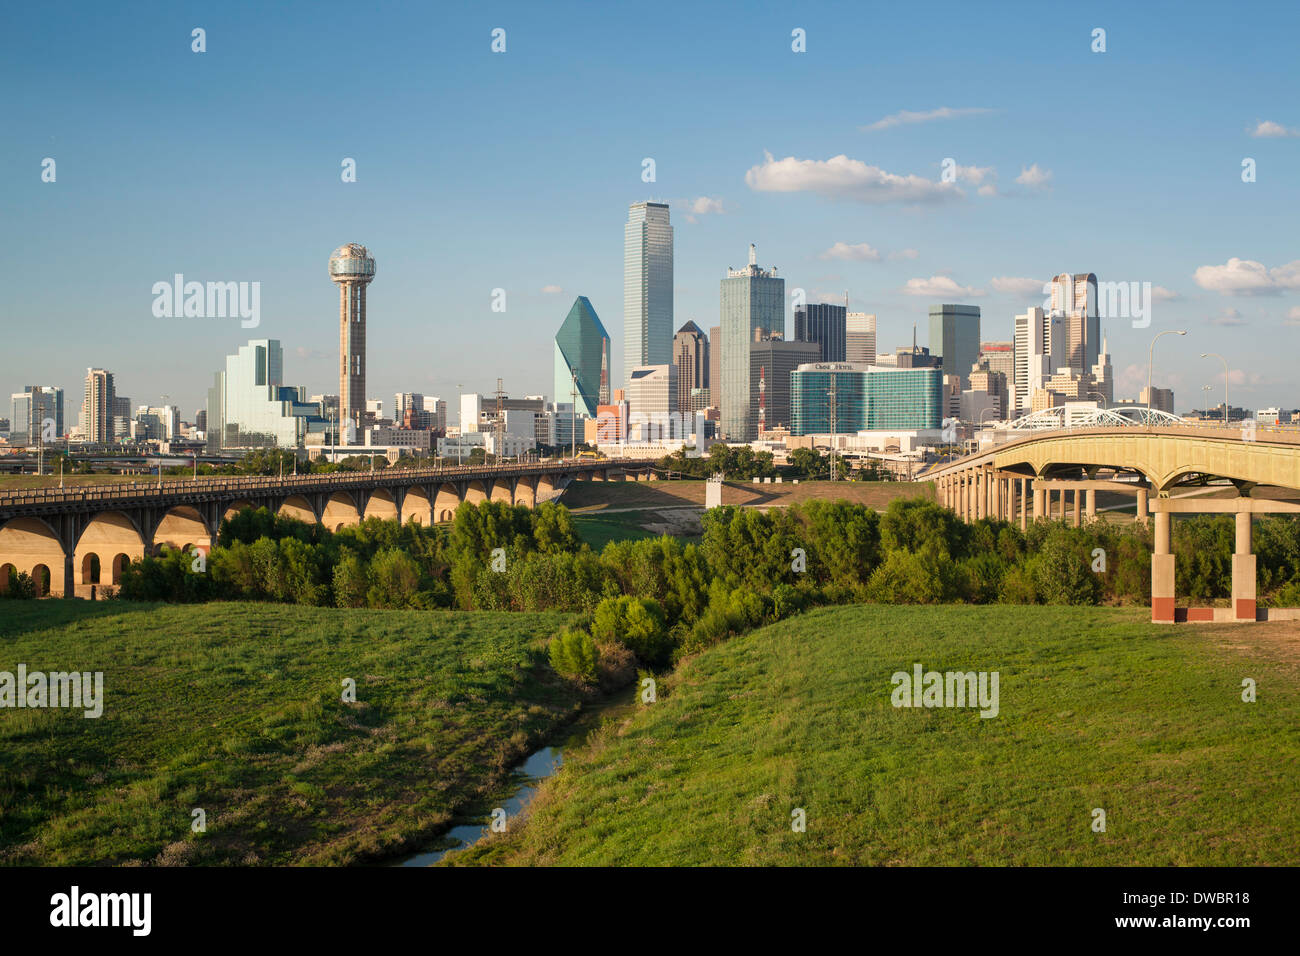 Dallas, Texas, USA, Freeway bridge over Dallas River floodplain, and downtown skyline - Stock Image